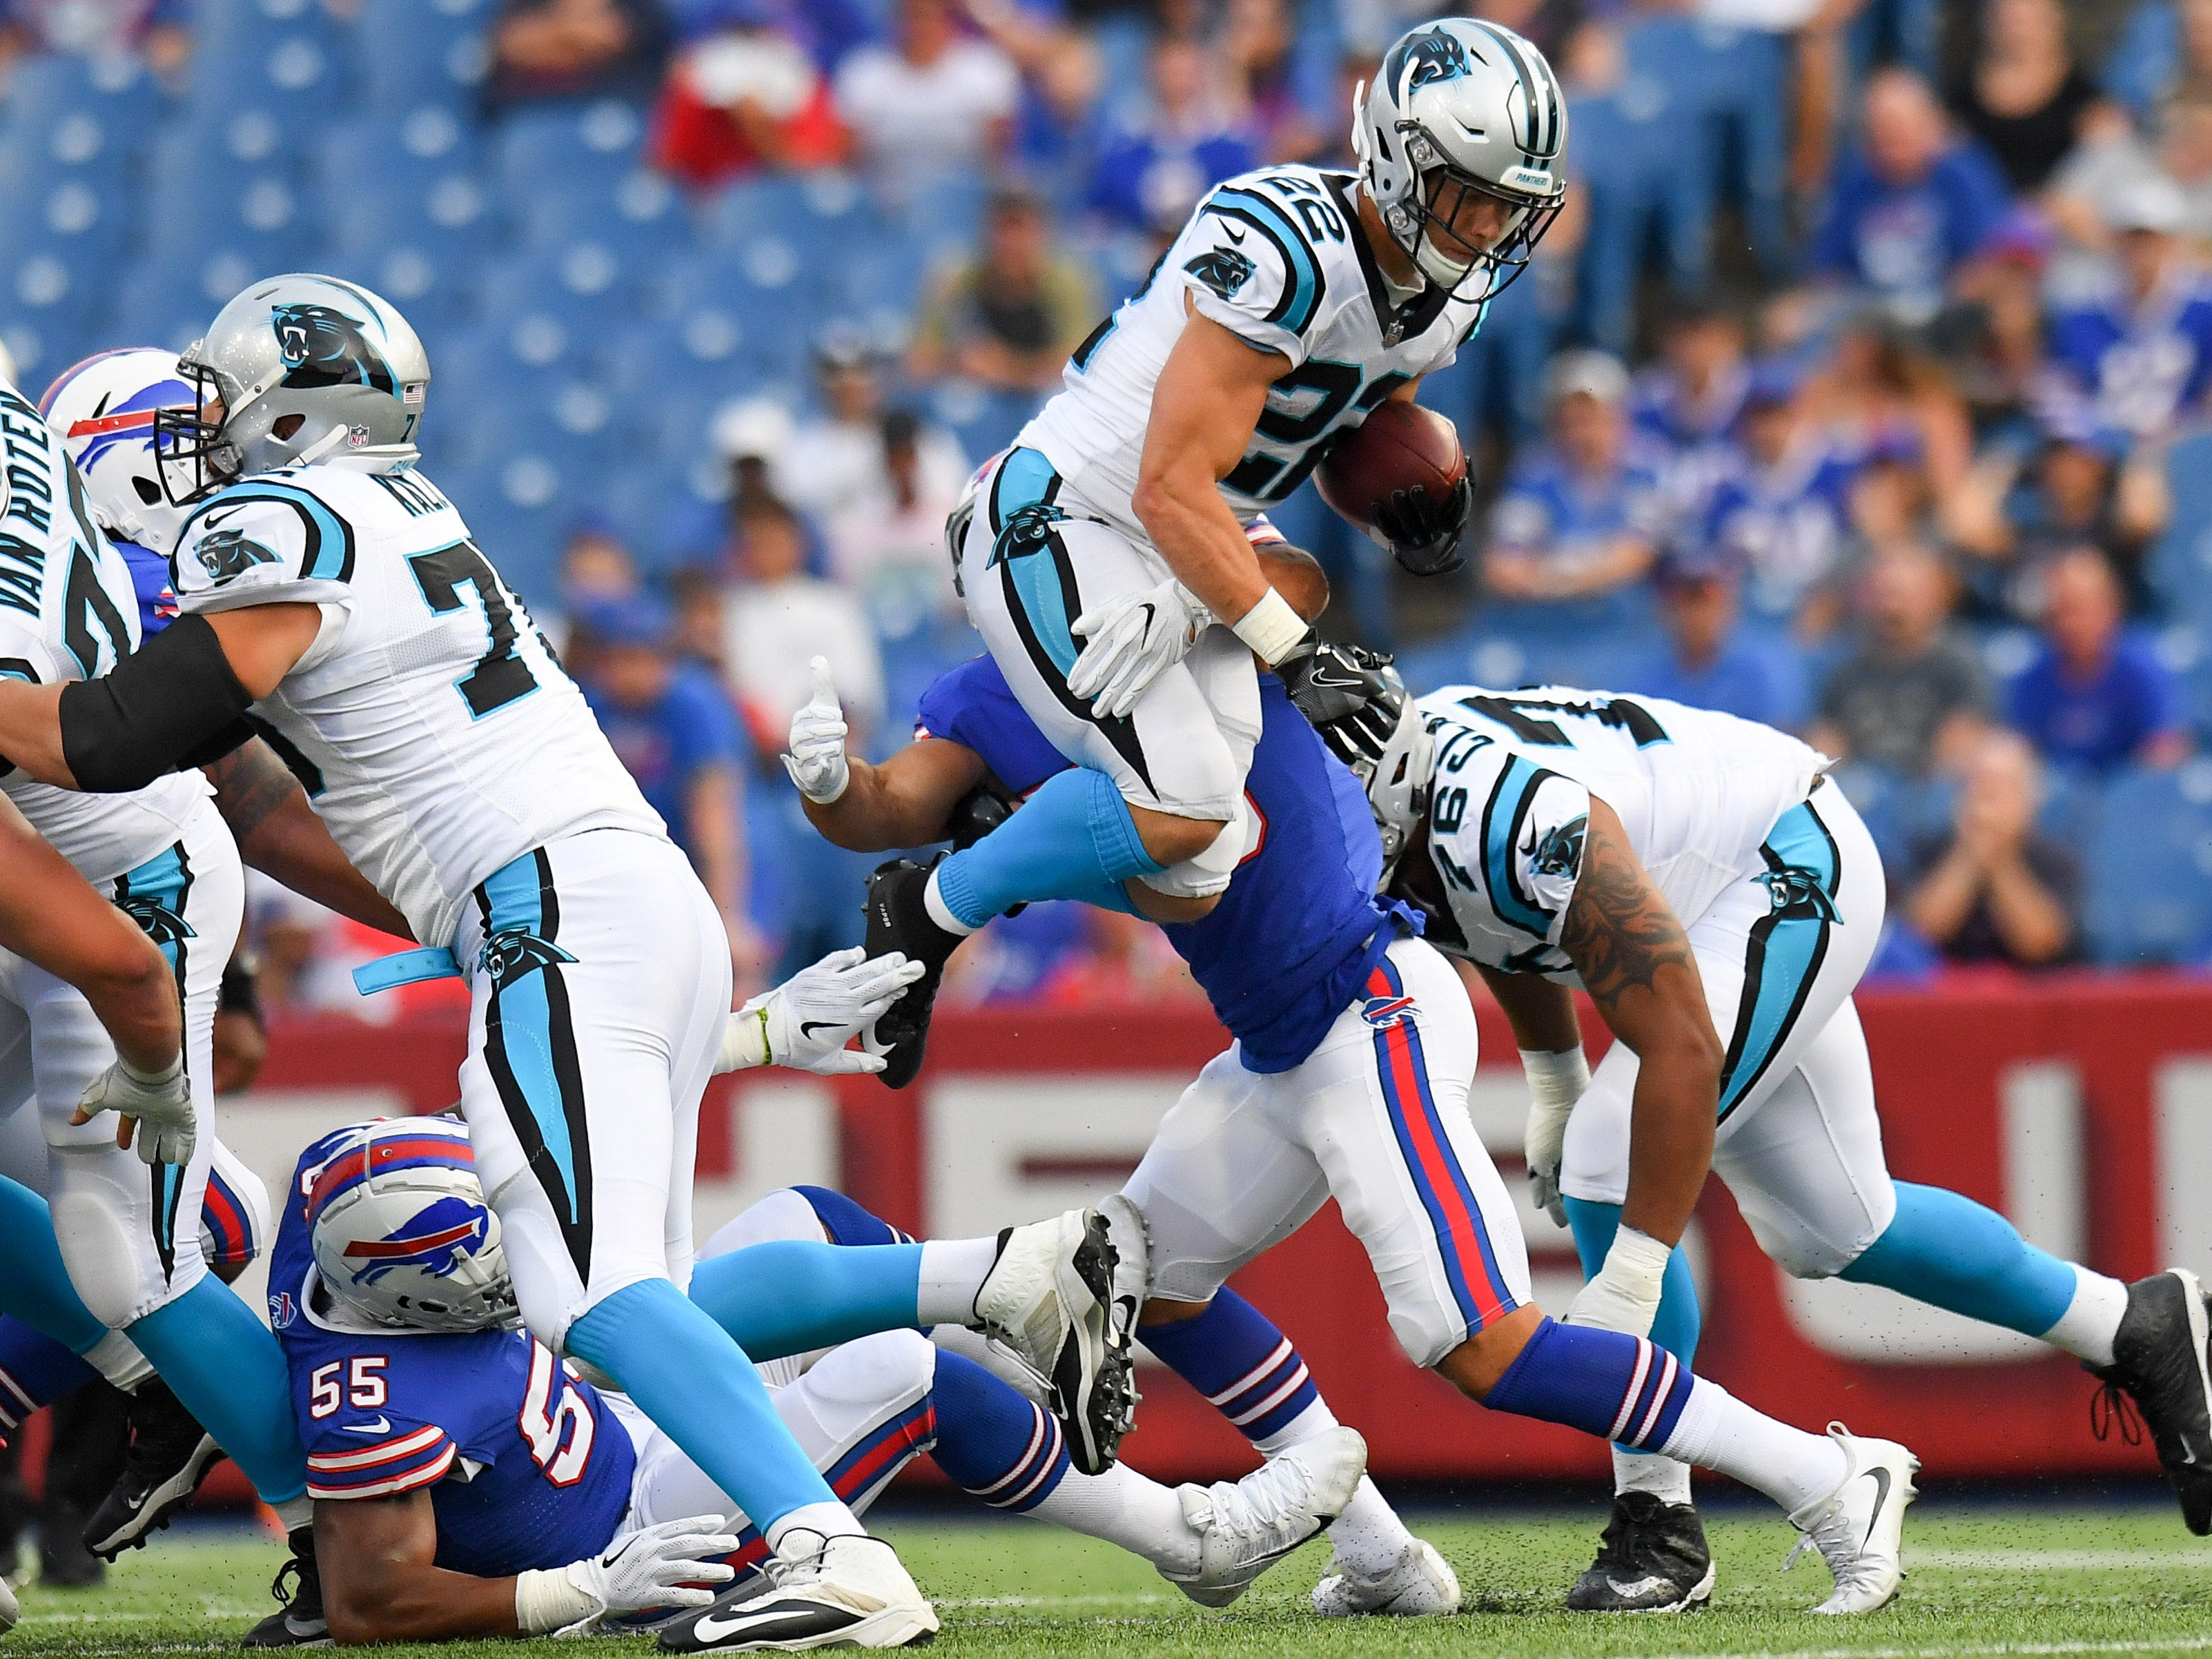 Carolina Panthers running back Christian McCaffrey (22) leaps while running with the ball against the Buffalo Bills during the first quarter at New Era Field.